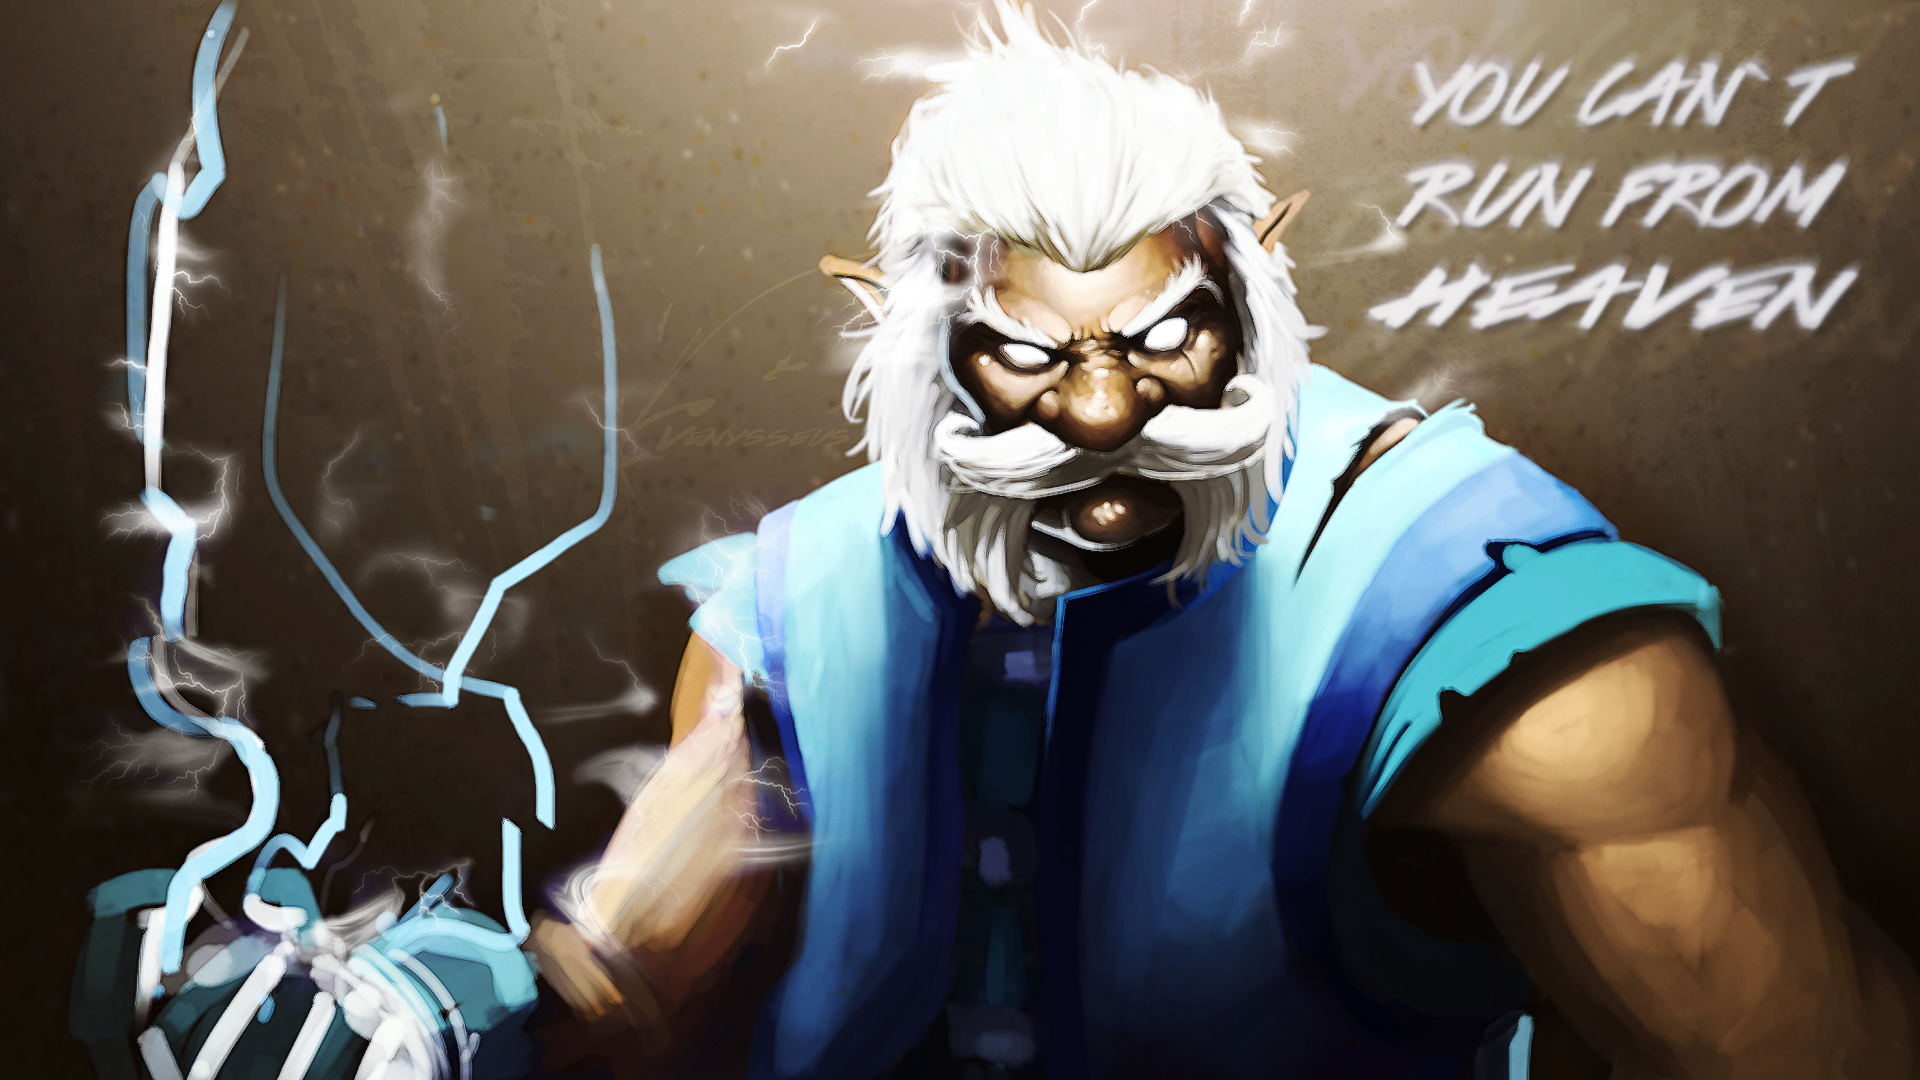 dota 2 wallpaper 3 edit zeus by venysseusdota on deviantart